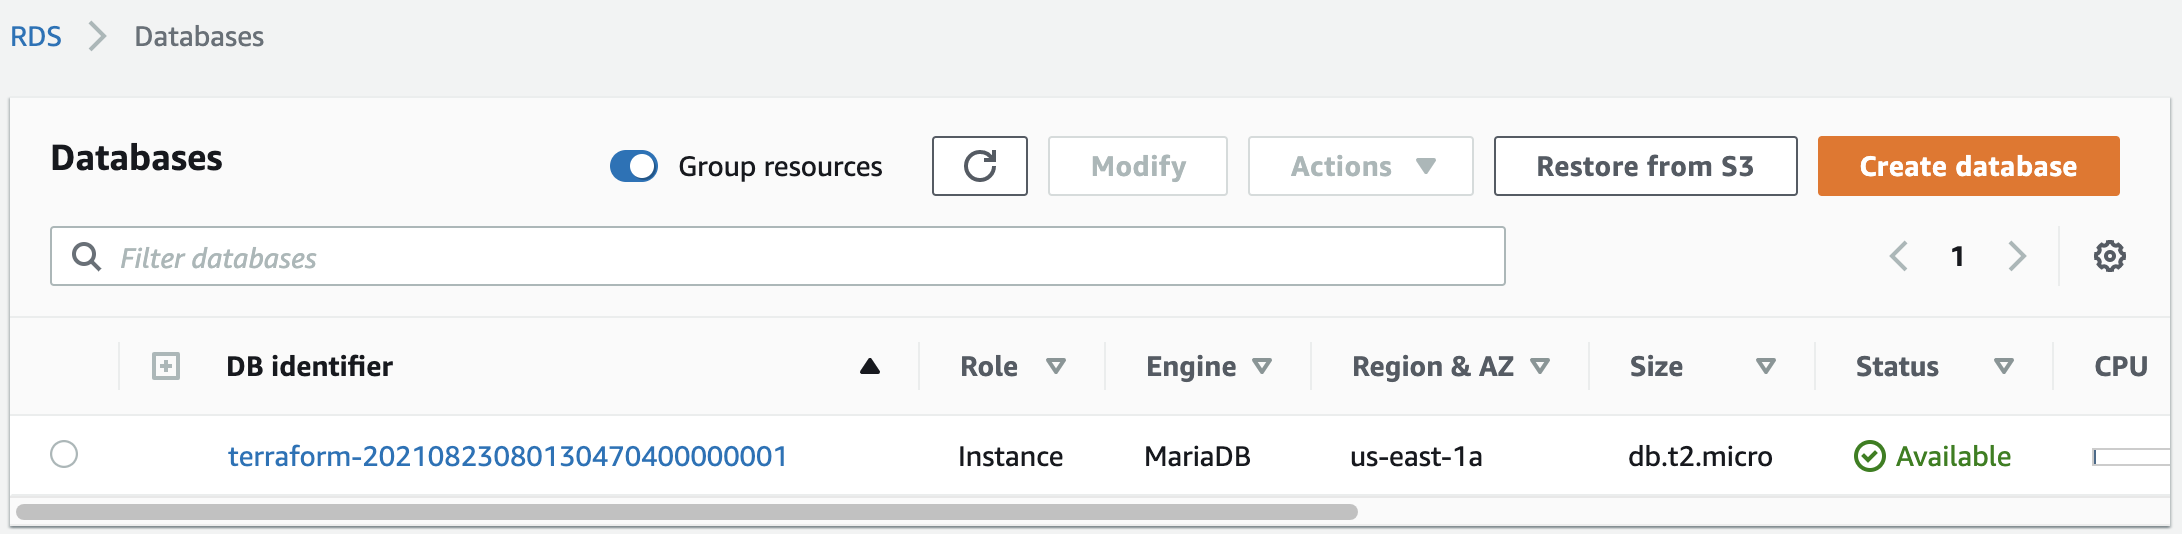 The created RDS database in the AWS web console